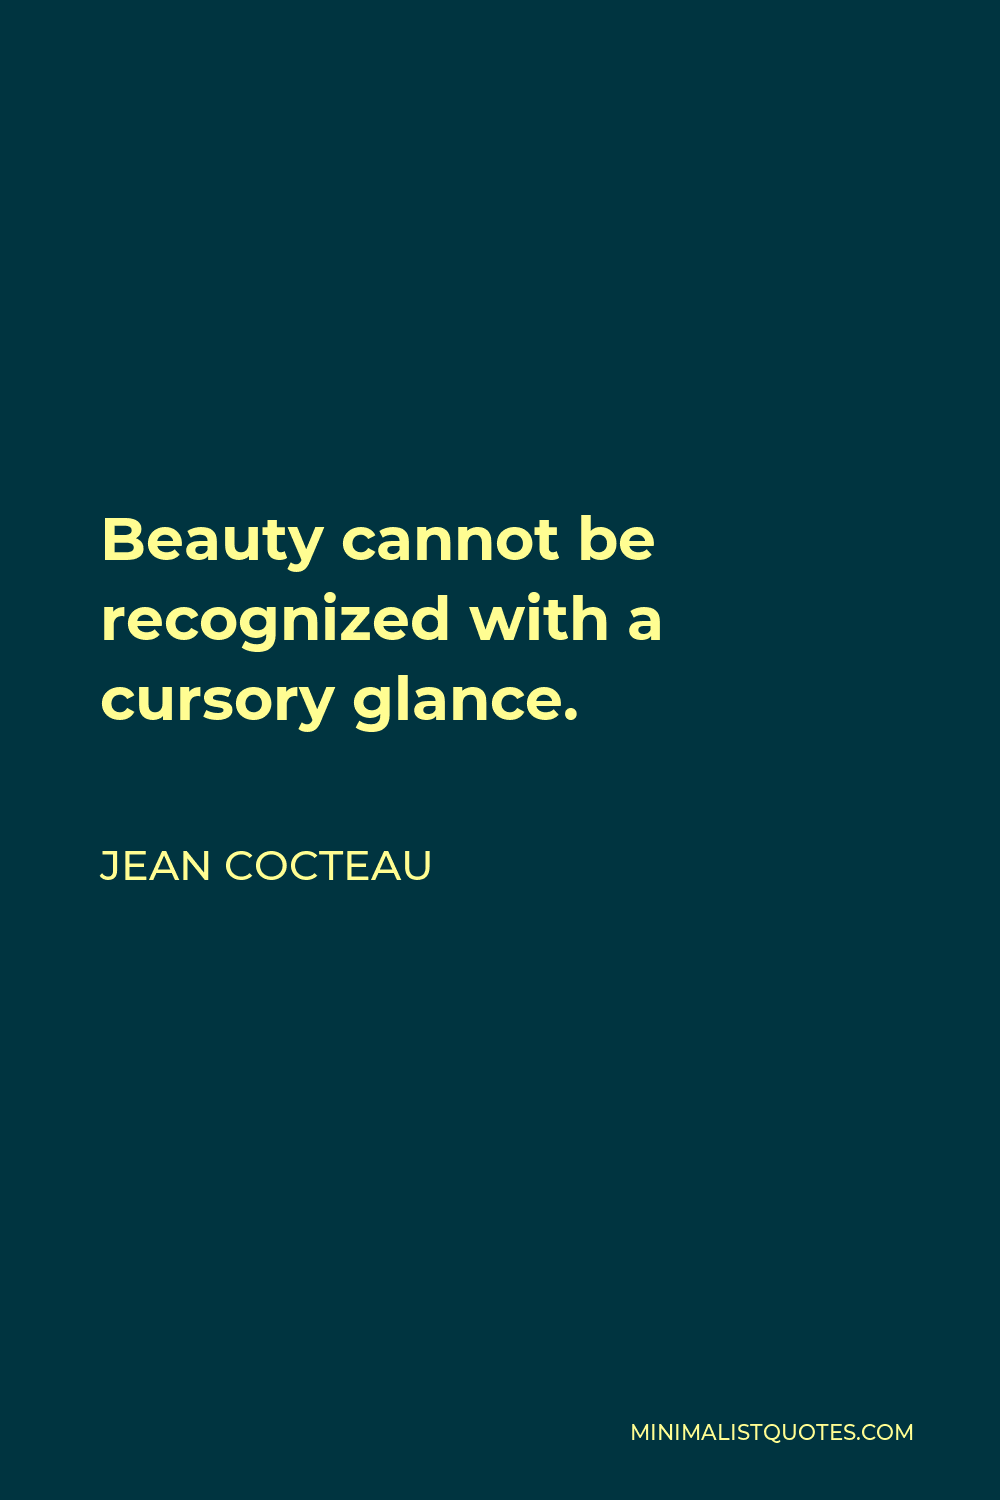 Jean Cocteau Quote - Beauty cannot be recognized with a cursory glance.